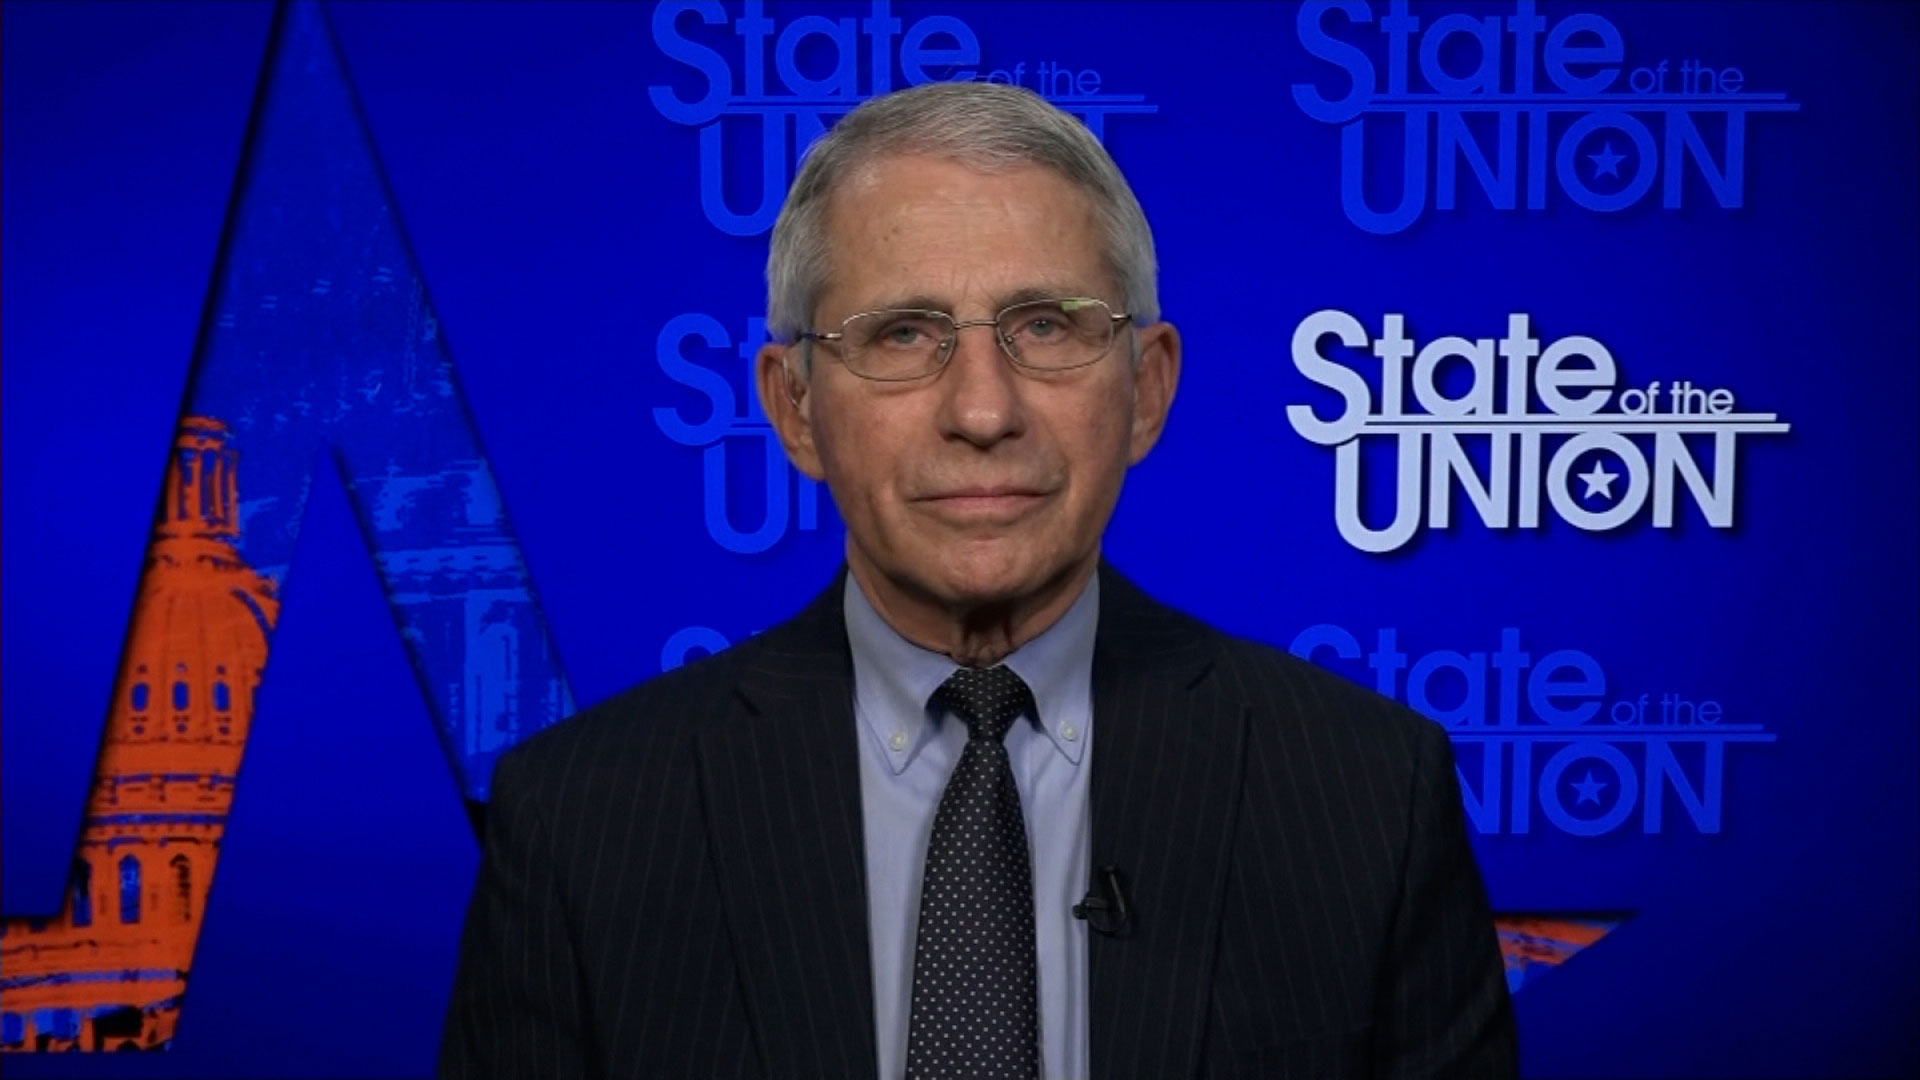 Dr. Anthony Fauci, director of the National Institutes of Allergy and Infectious Diseases, on April 18.